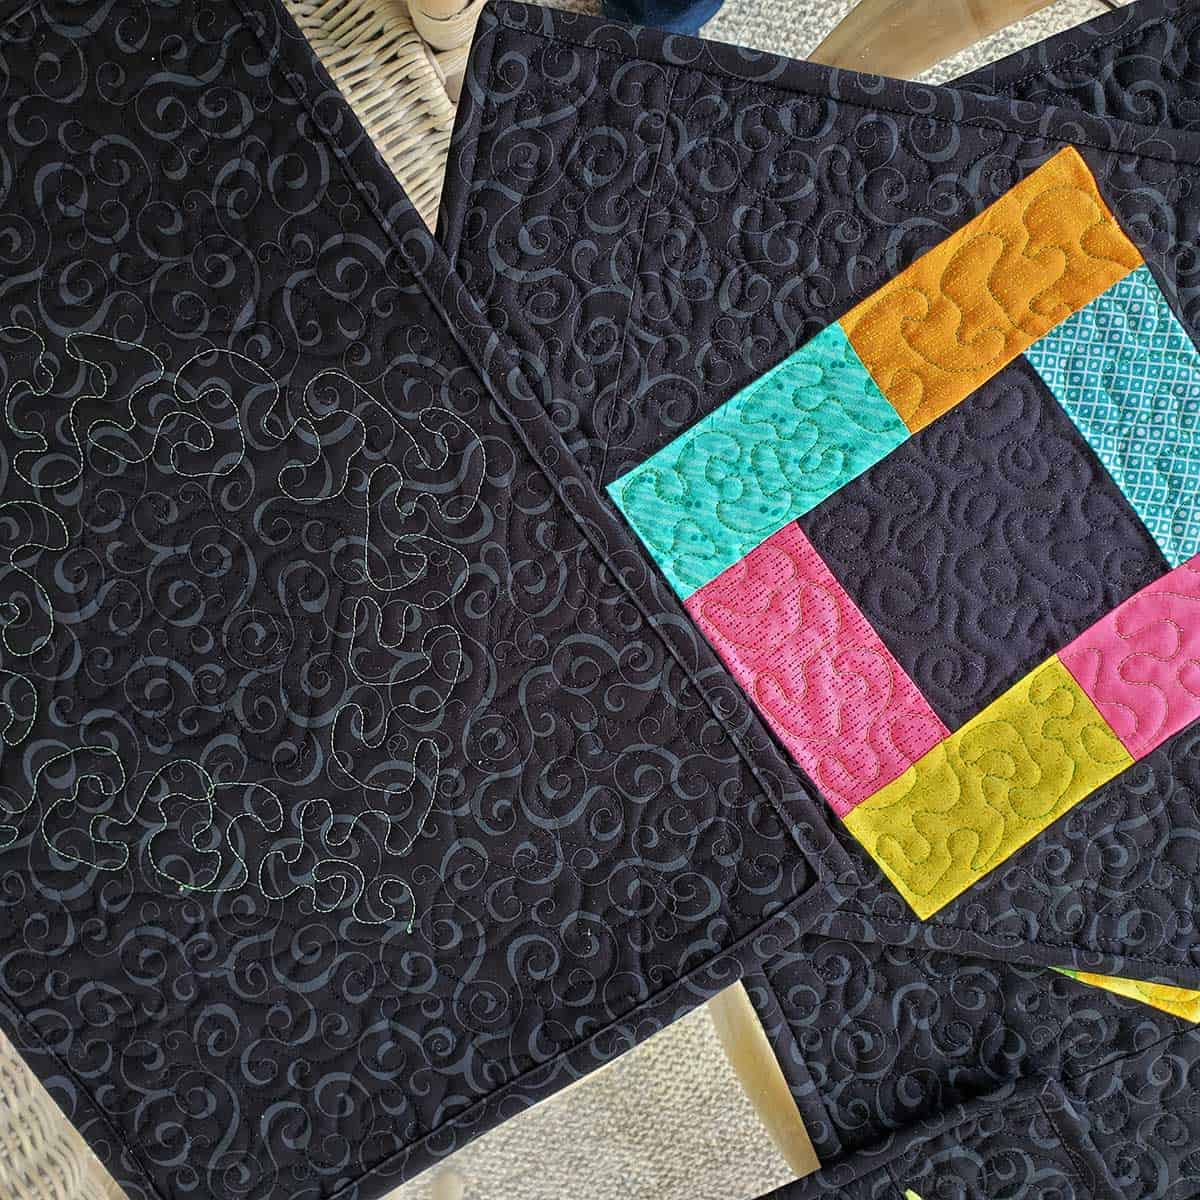 Showing the quilting on the Midnight Glow placemats